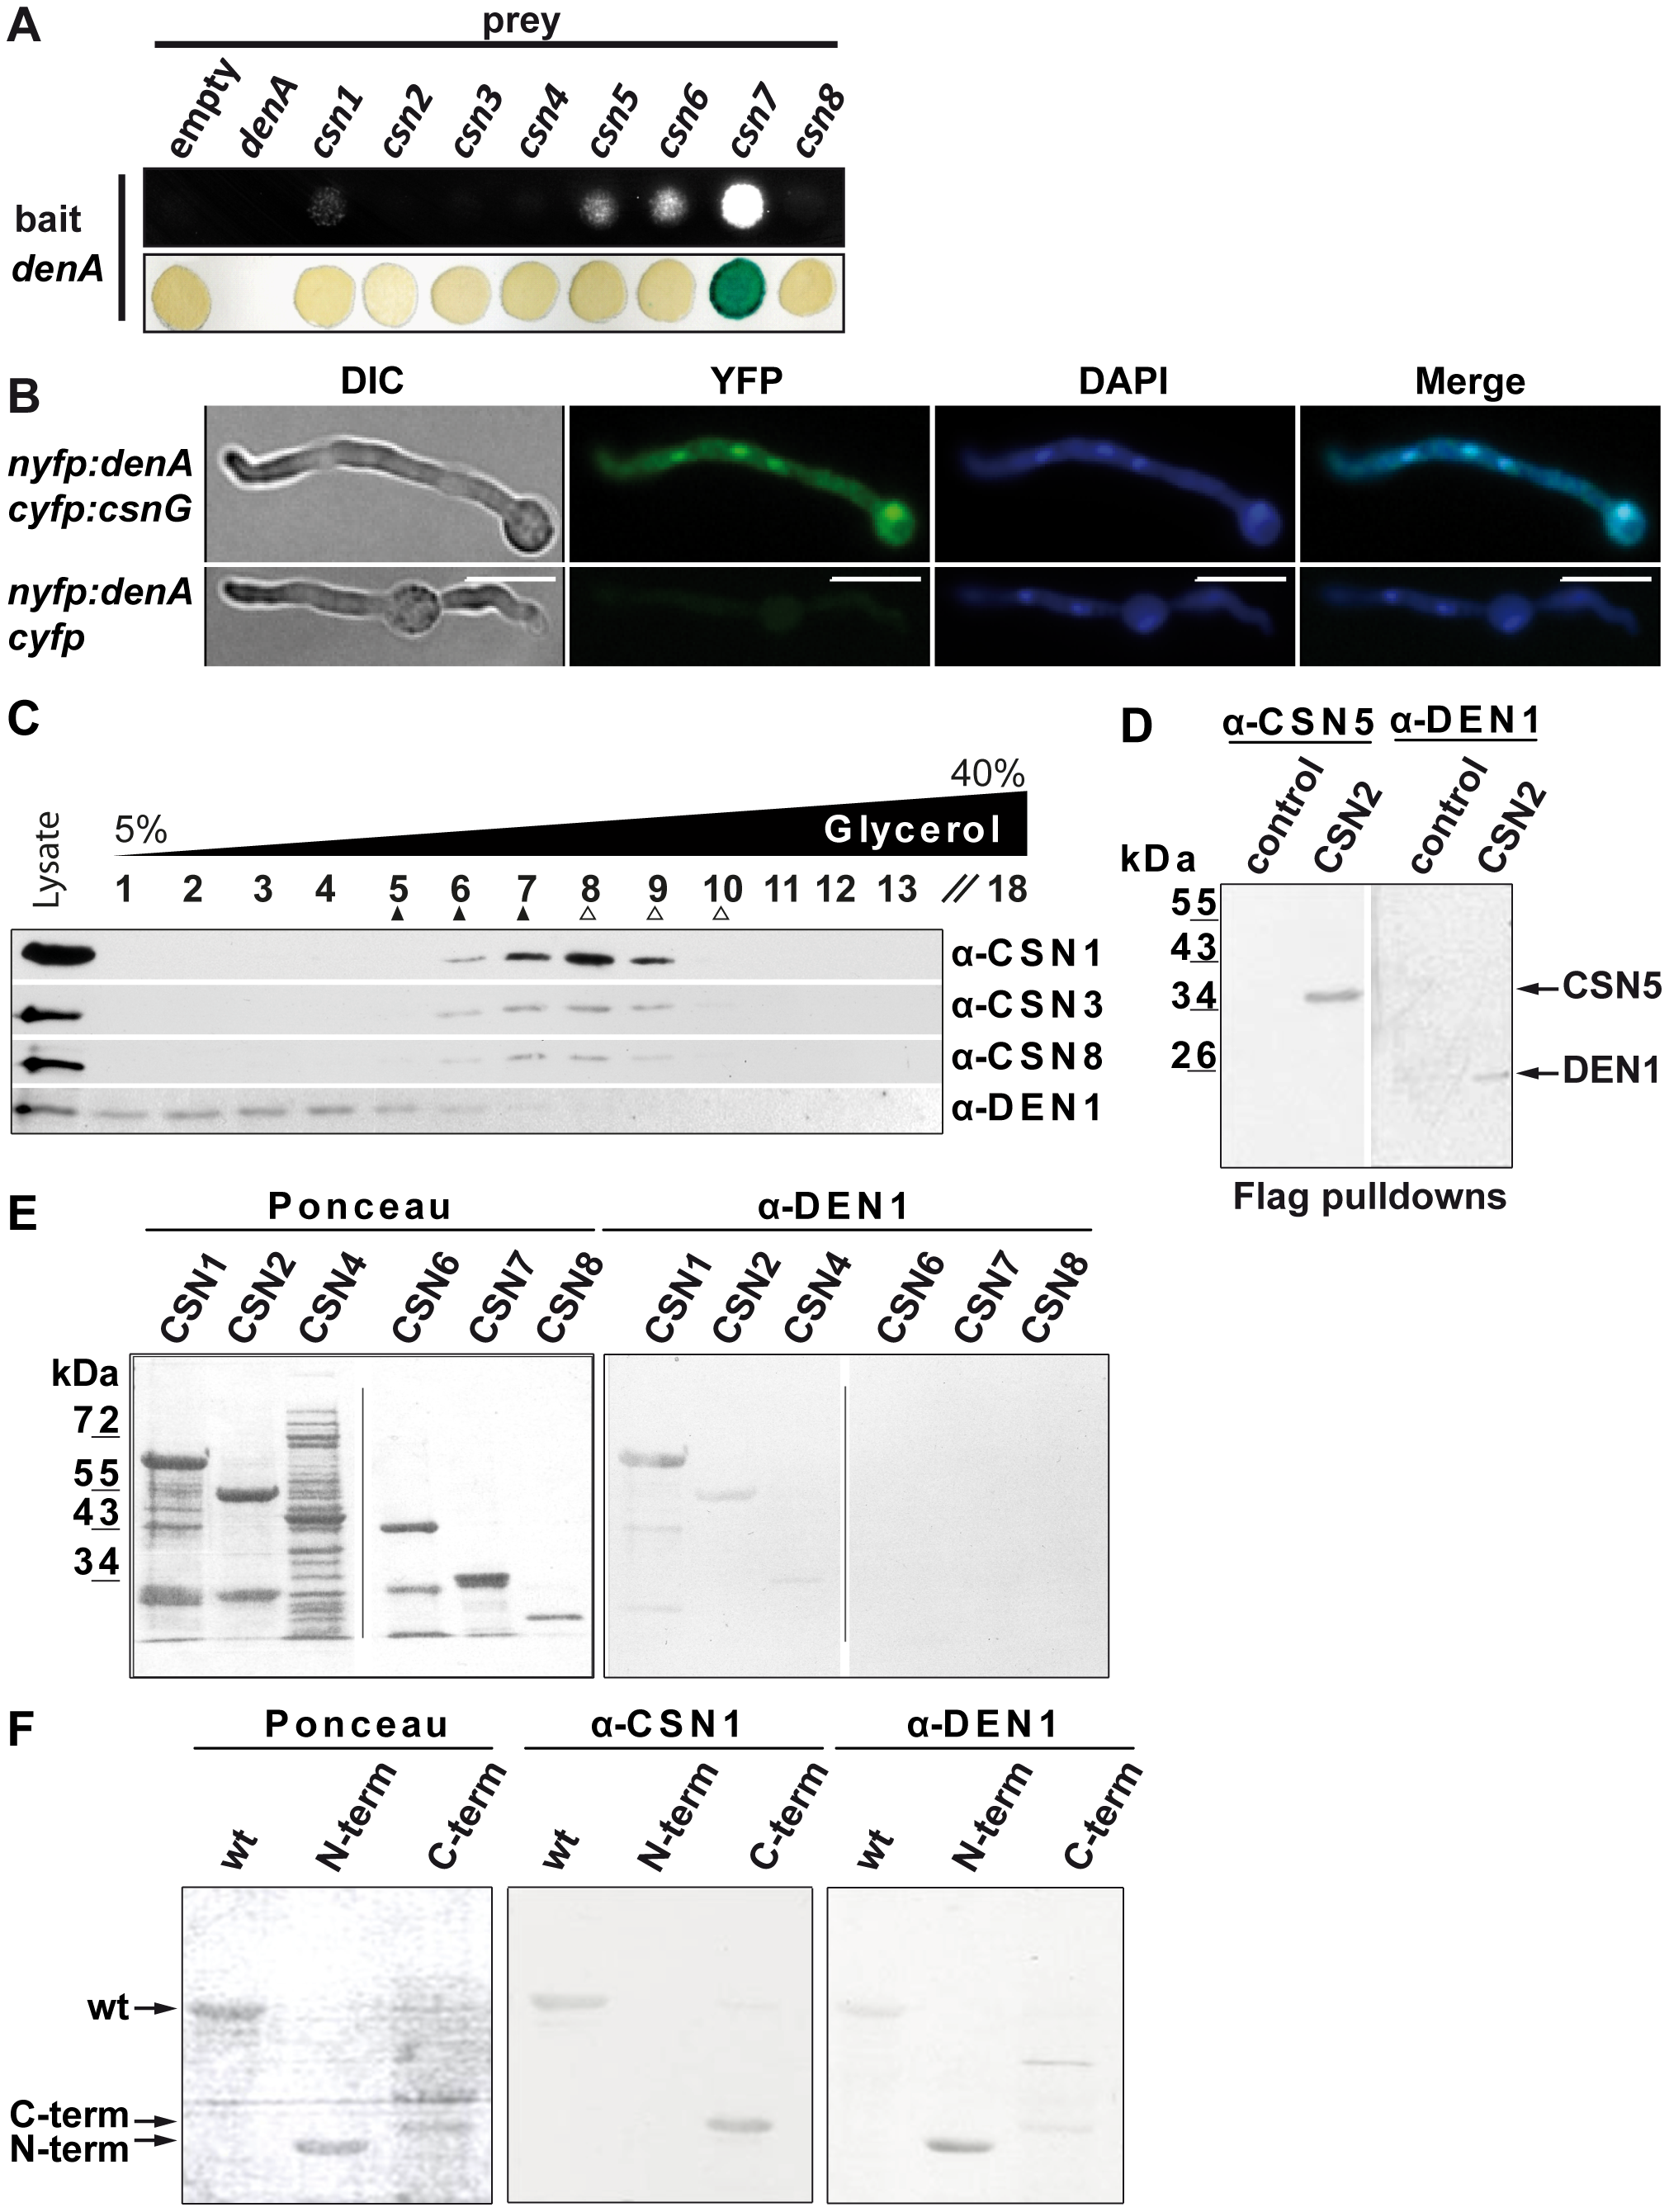 DEN1/DenA deneddylase interacts with the COP9 signalosome (CSN) in fungal and human cells.